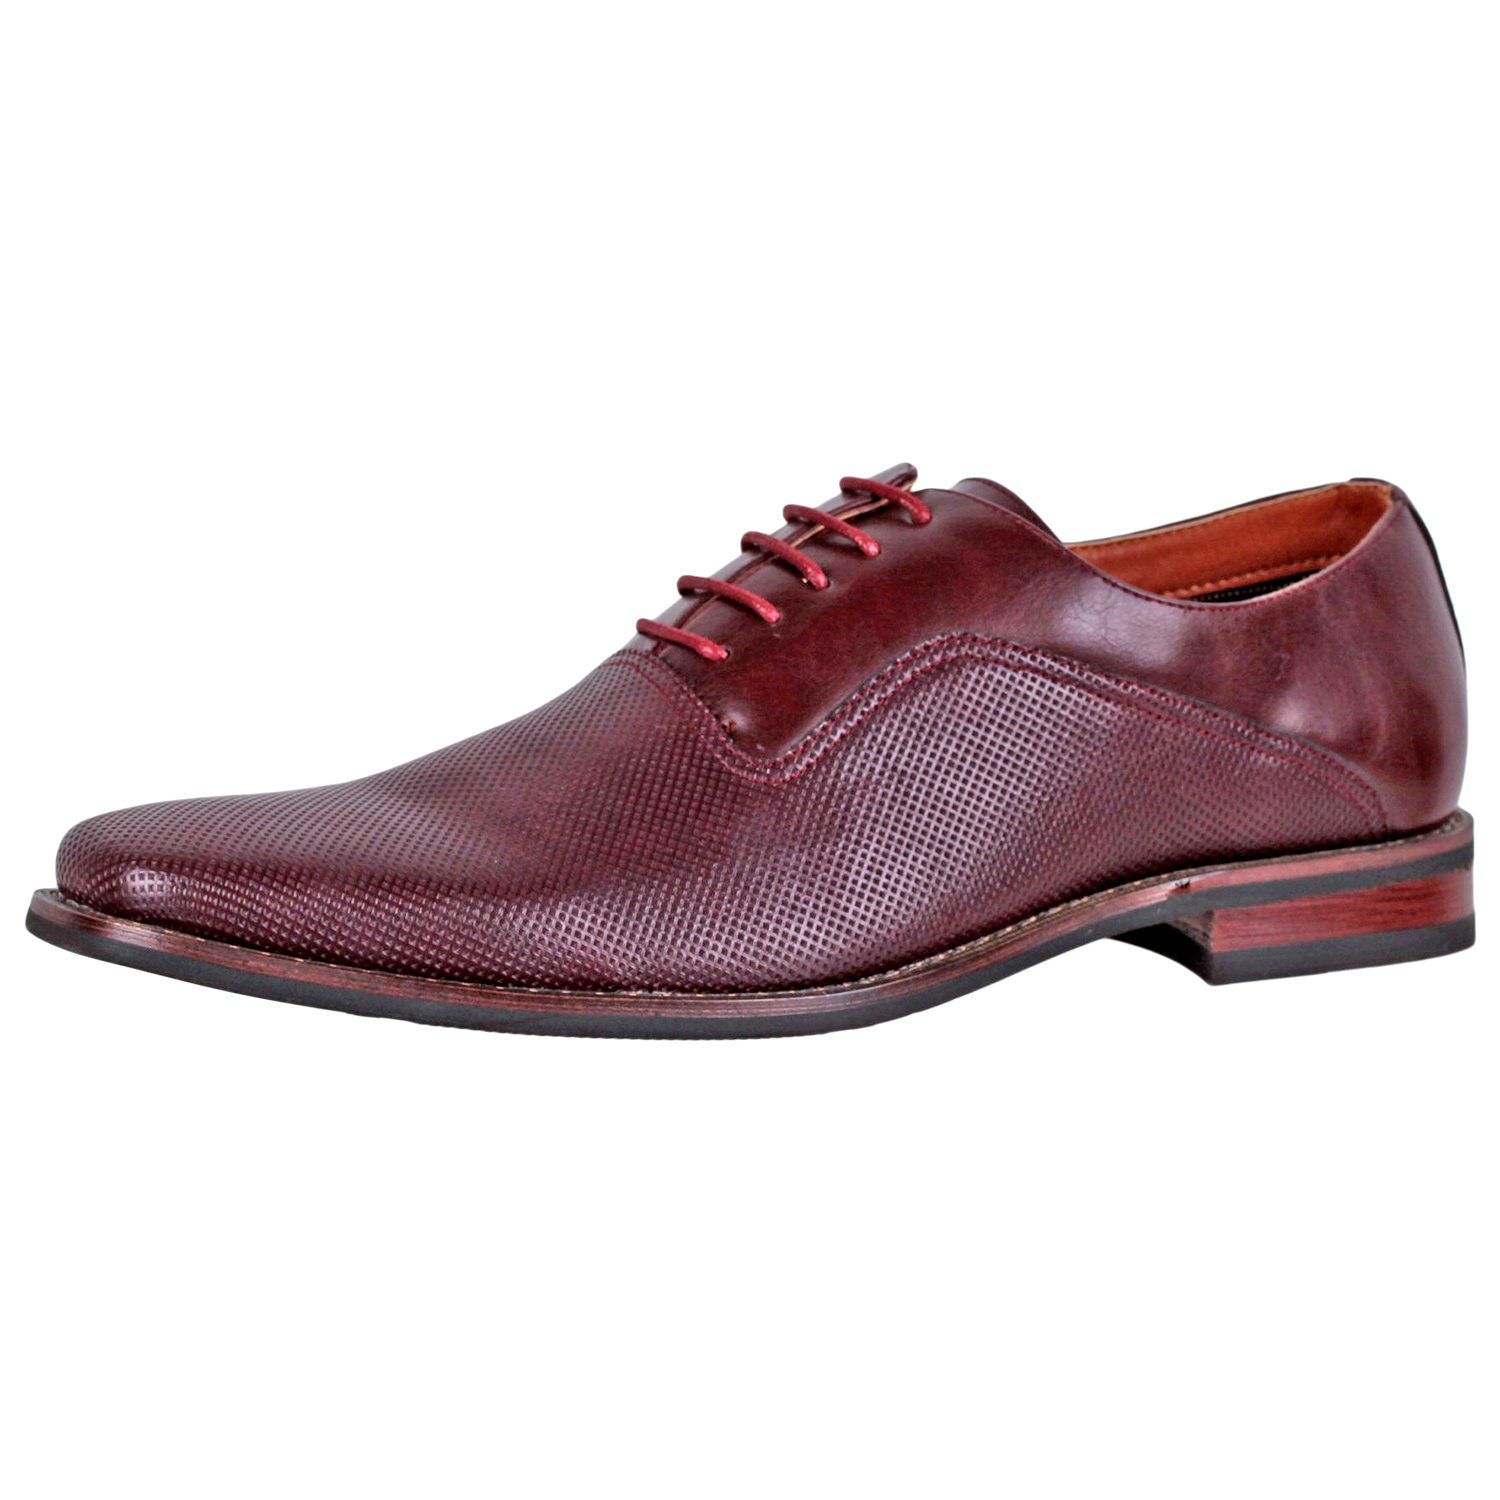 Details about Ferro Aldo Mens Lalo Oxford Dress Shoe MFA19539L Wine Size  10.5 ea3be331d48